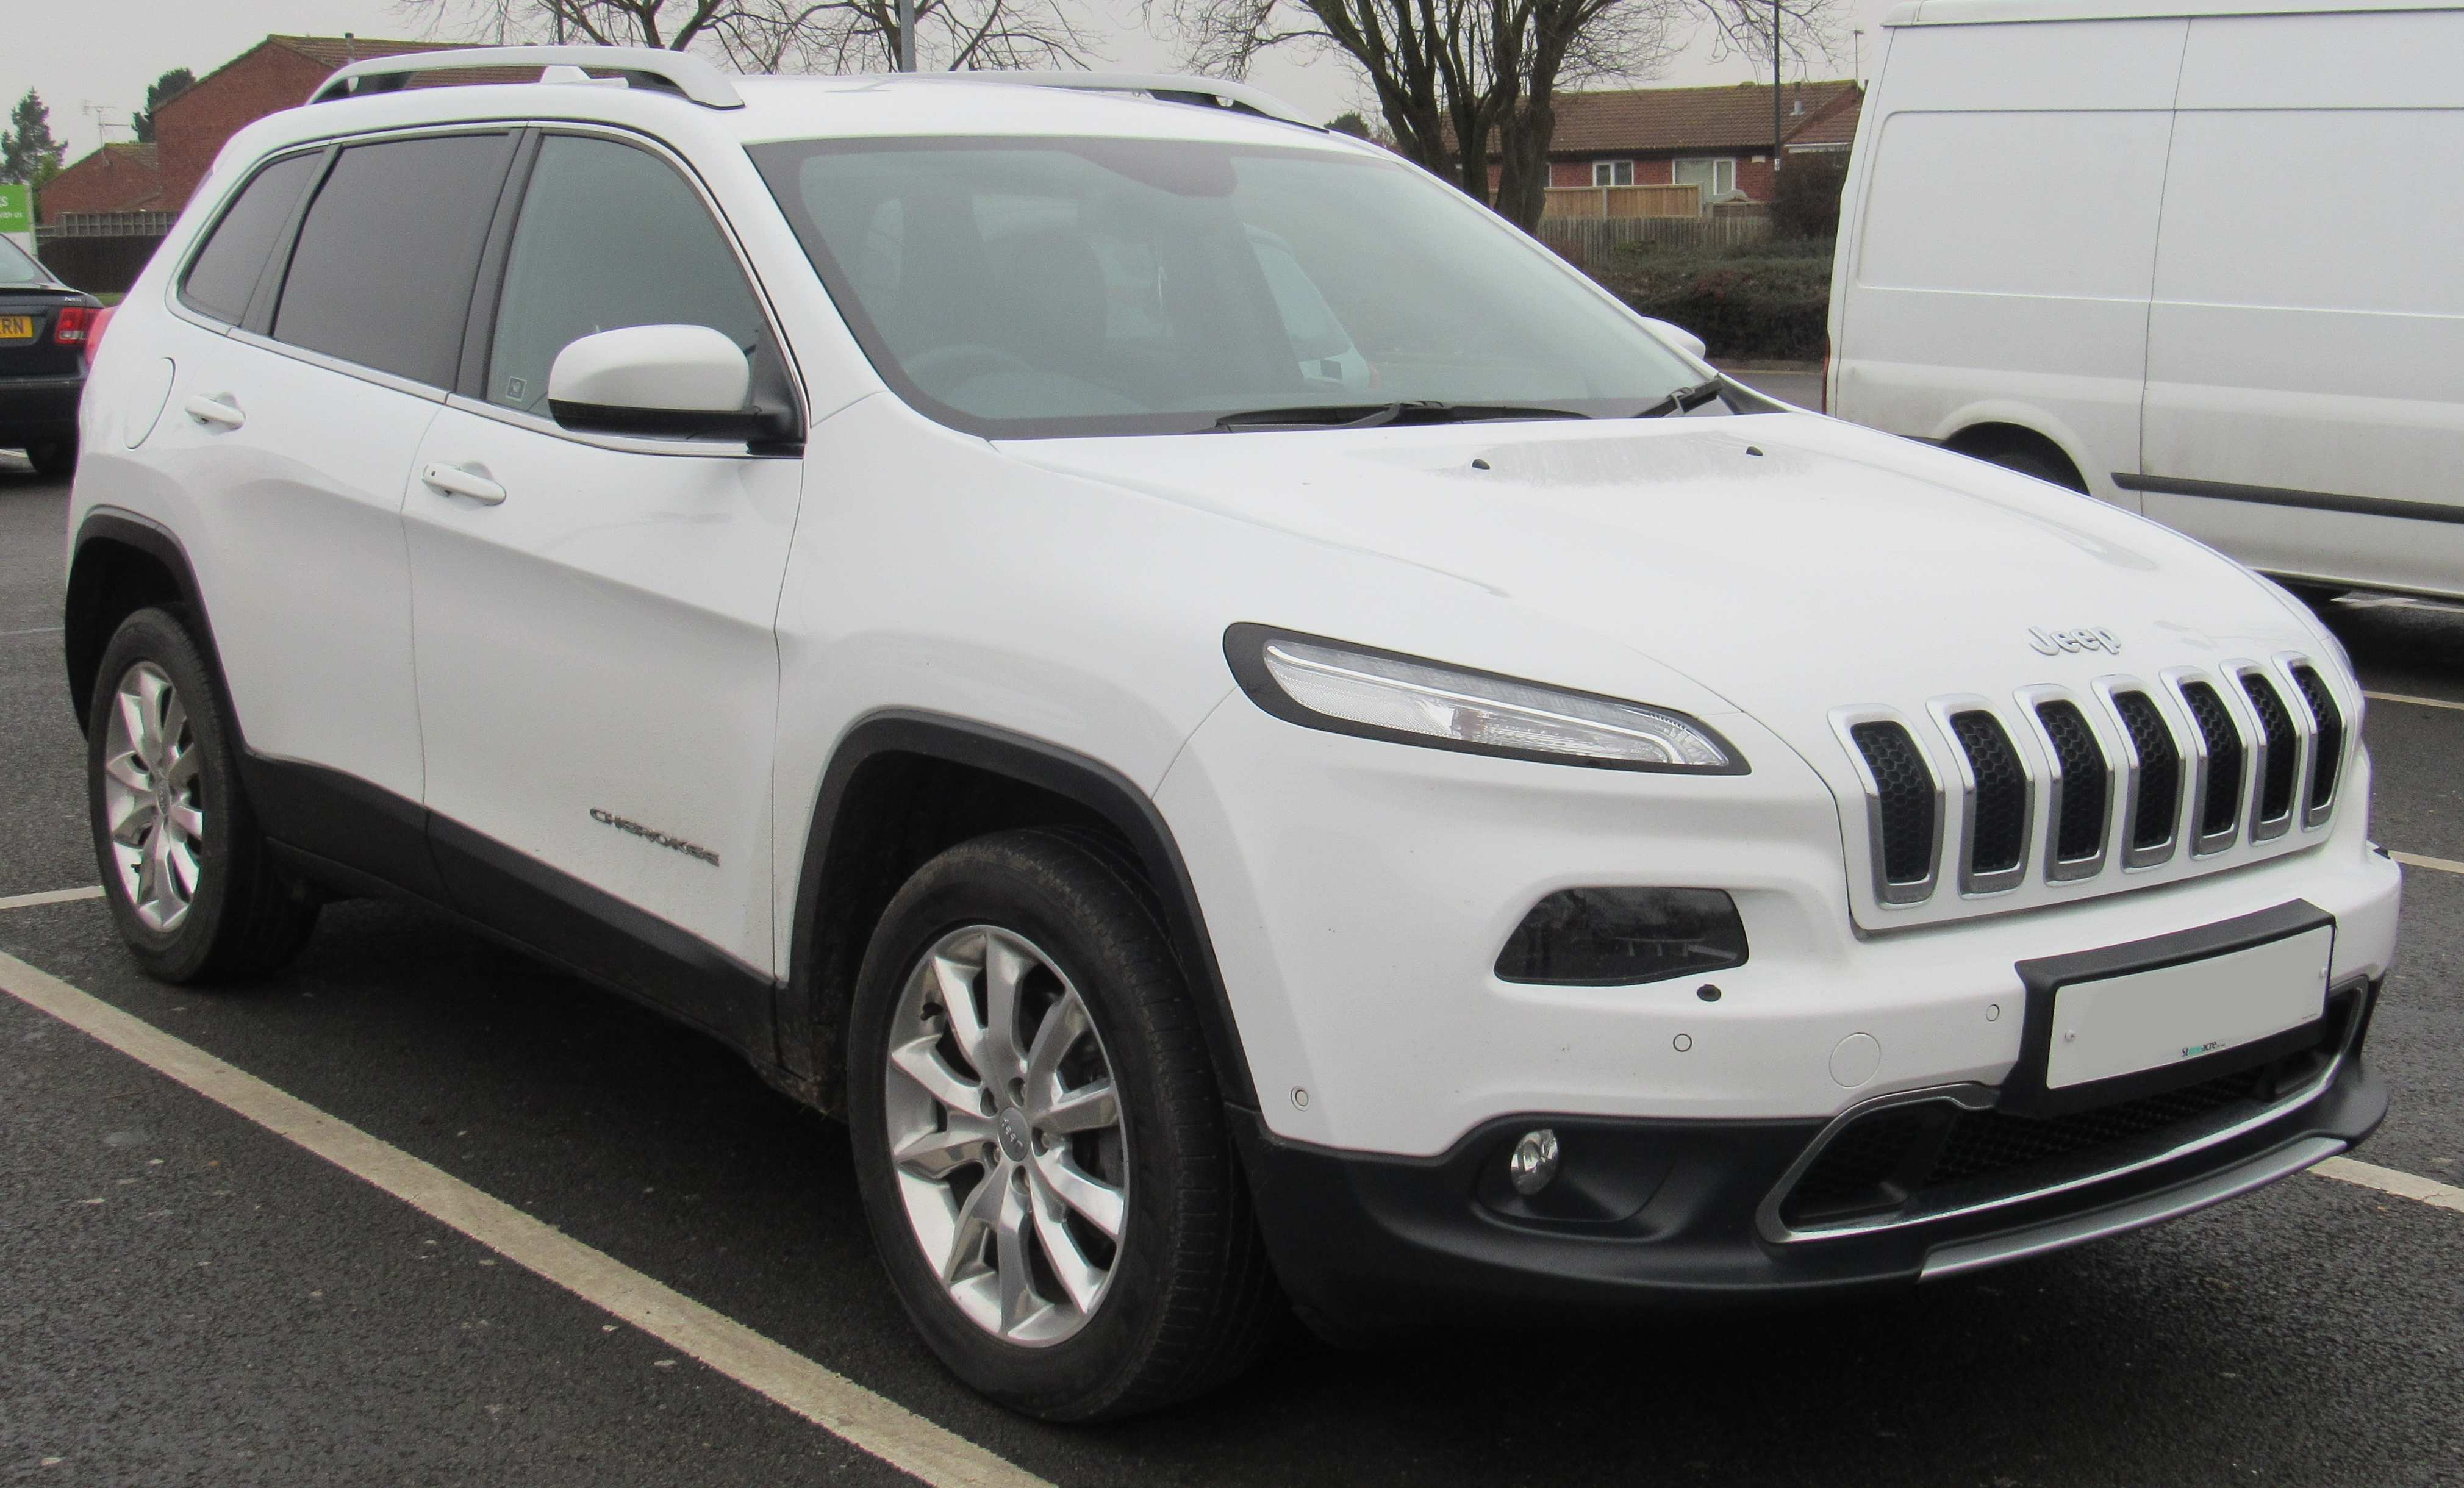 78 The The Jeep Cherokee Latitude Plus 2019 Release Date Rumors for The Jeep Cherokee Latitude Plus 2019 Release Date